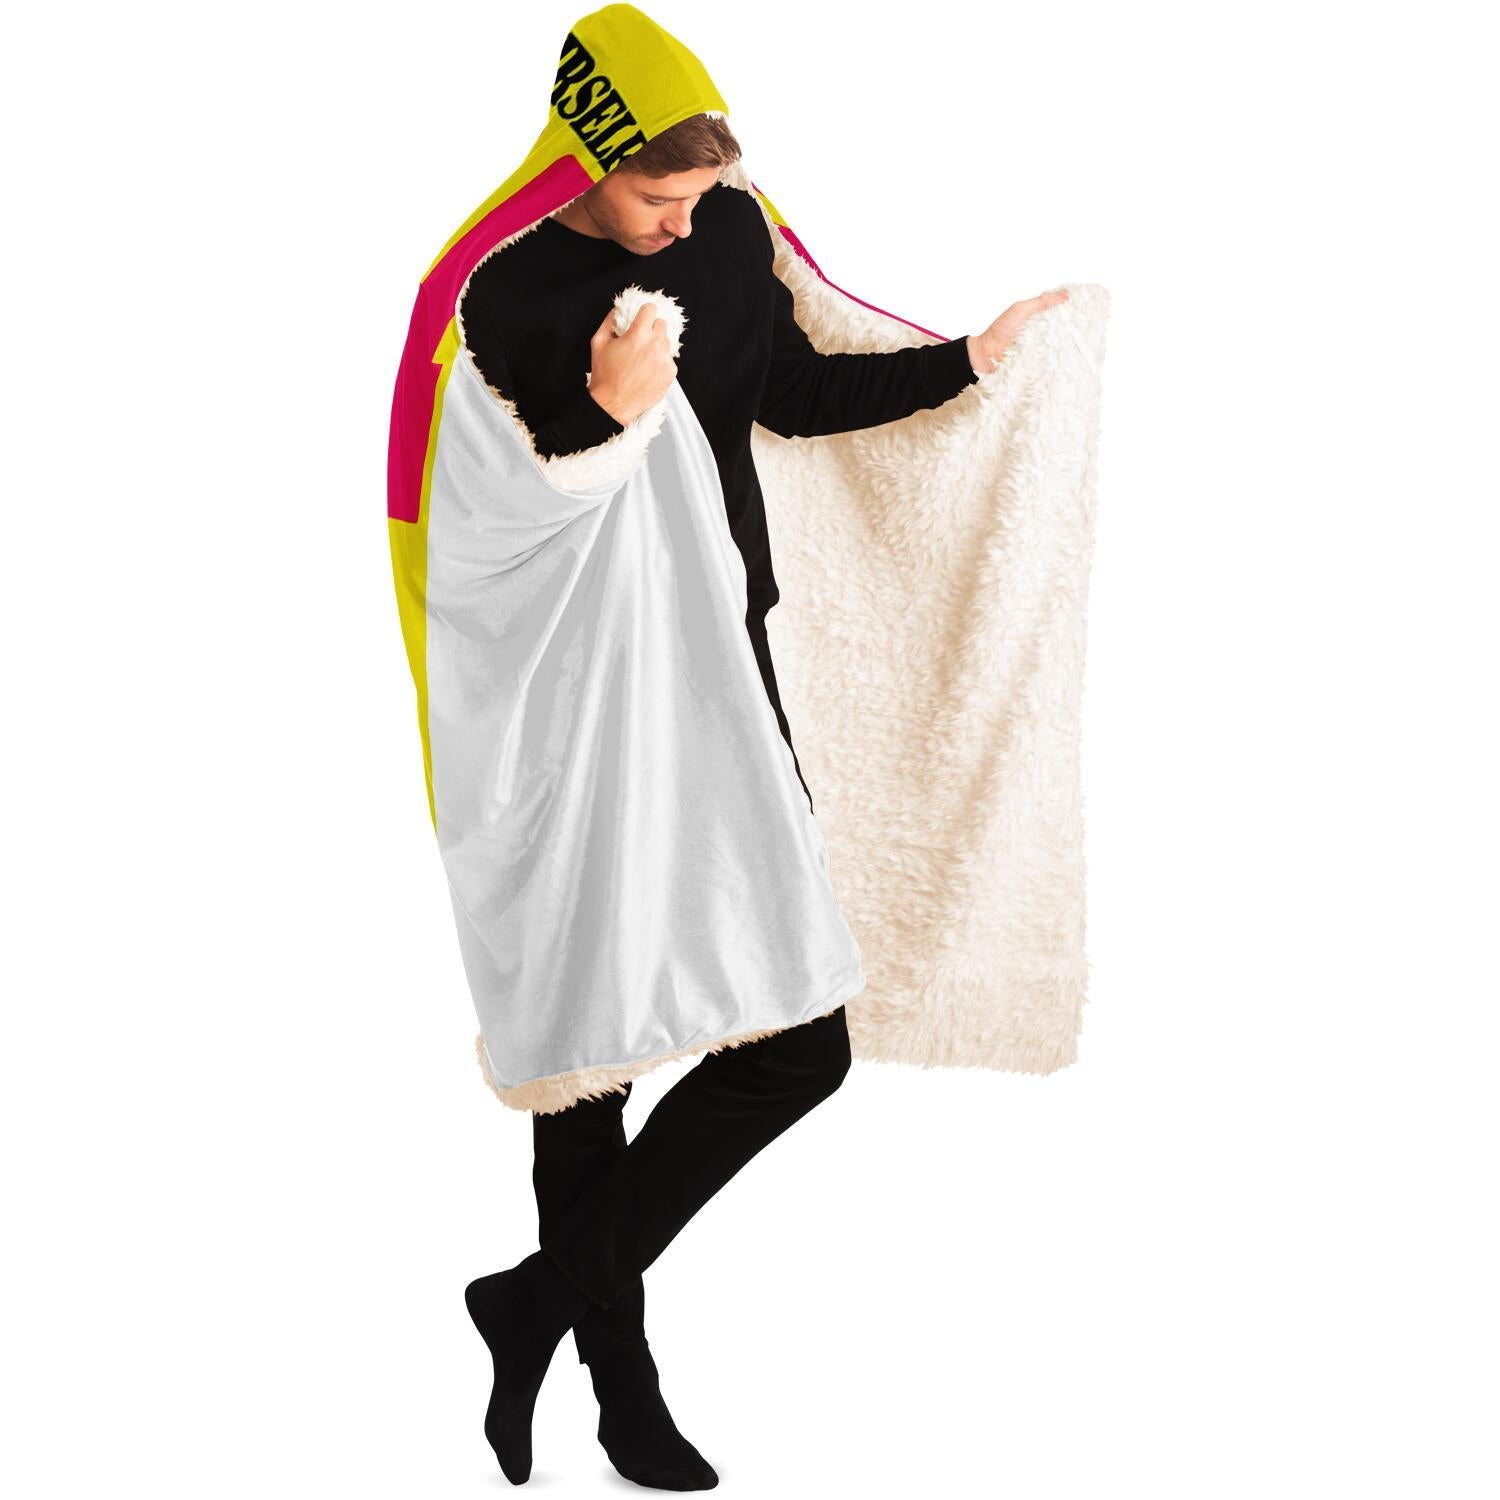 The Amazon Queen Hooded Blanket